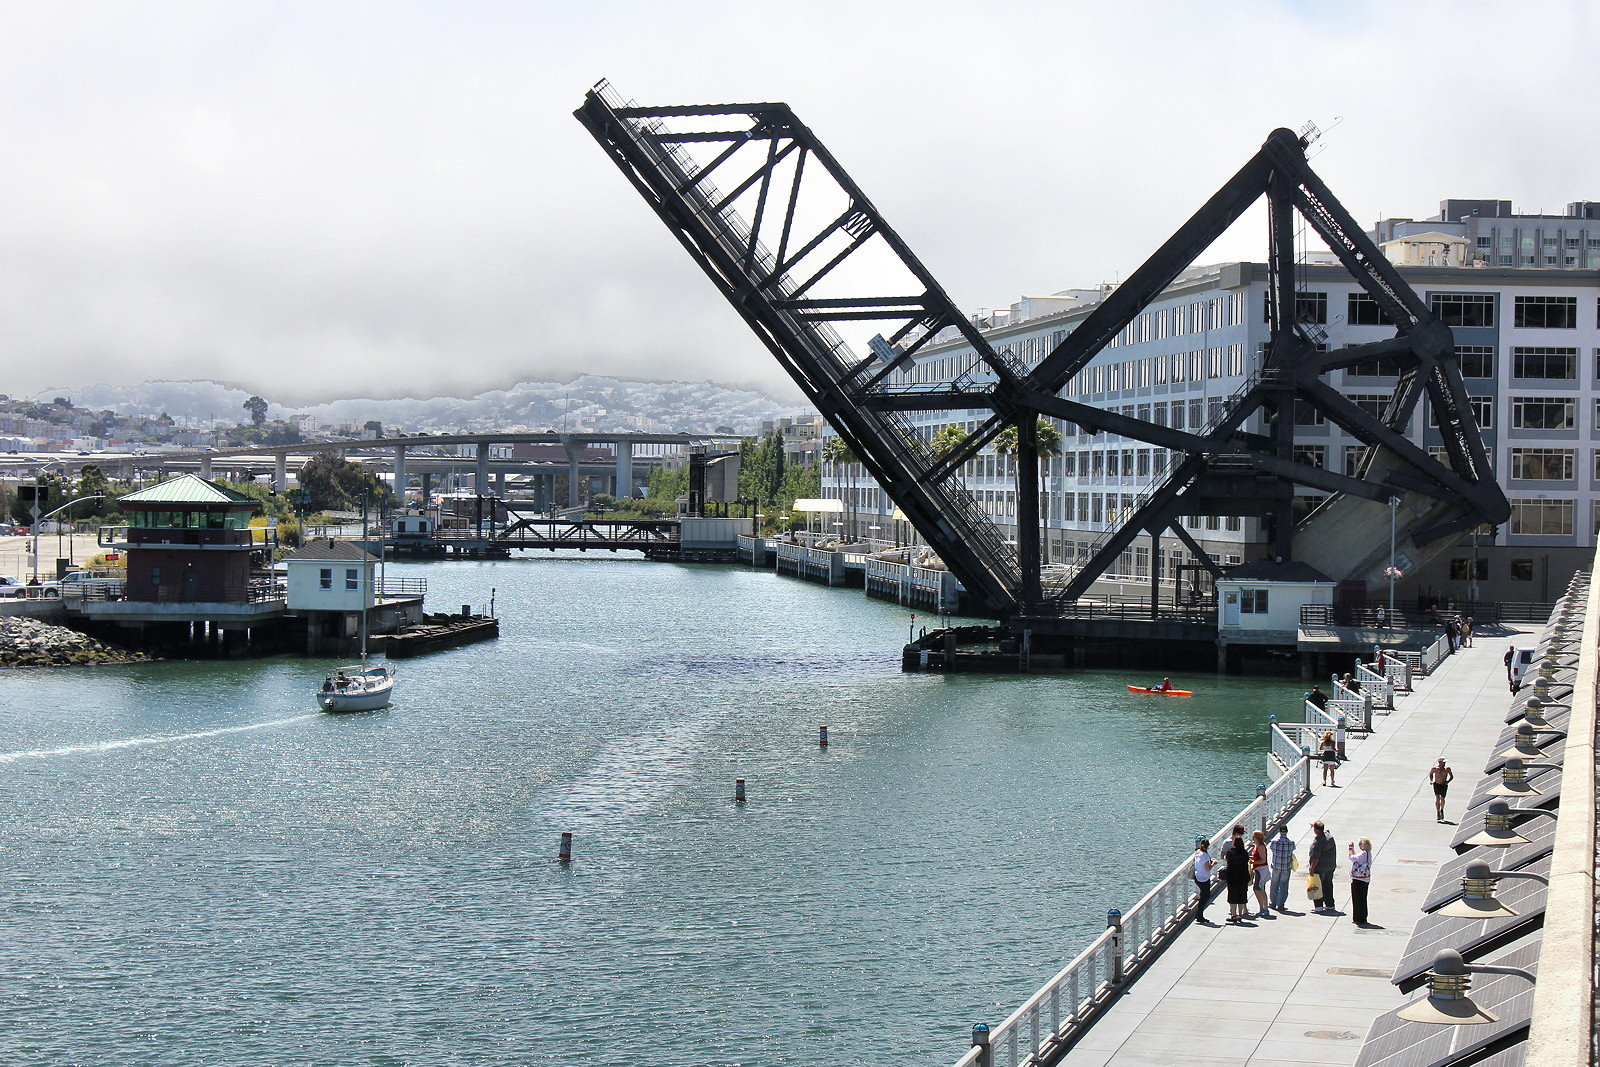 """The Fourth Street Bridge and the Francis """"Lefty"""" O'Doul Bridge are both working drawbridges designed by J.B. Strauss, whose firm, the Bascule Bridge Co., later designed the Golden Gate Bridge."""